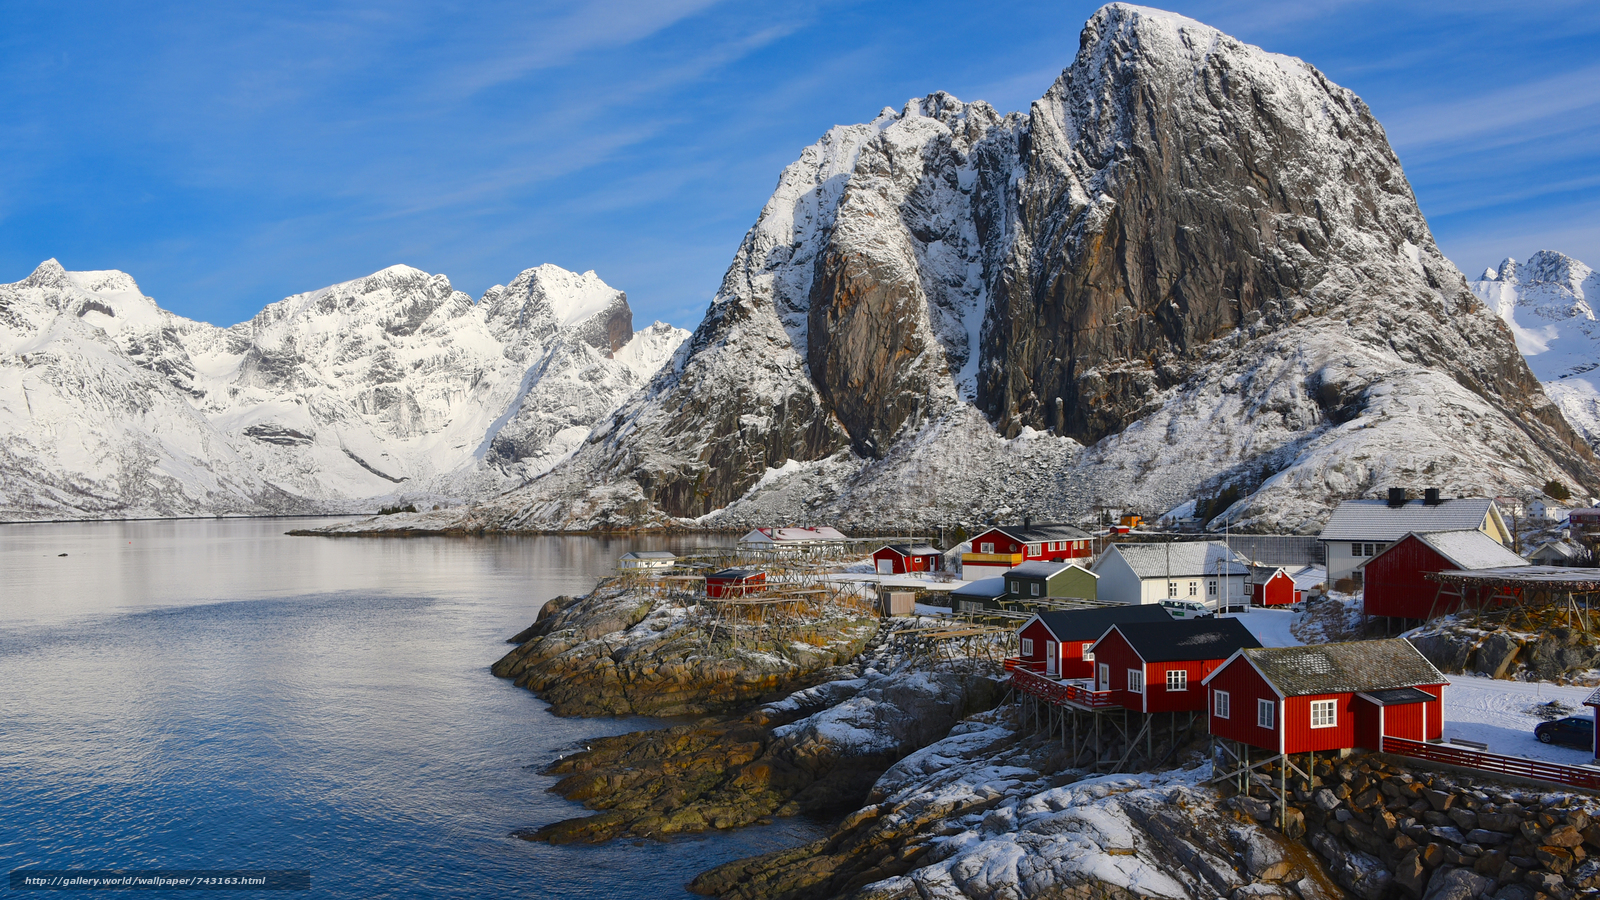 Lofoten, Norway, Lofoten, island, winter, snow, the mountains, rock, houses, water, sky, landscape, nature, view, Coast